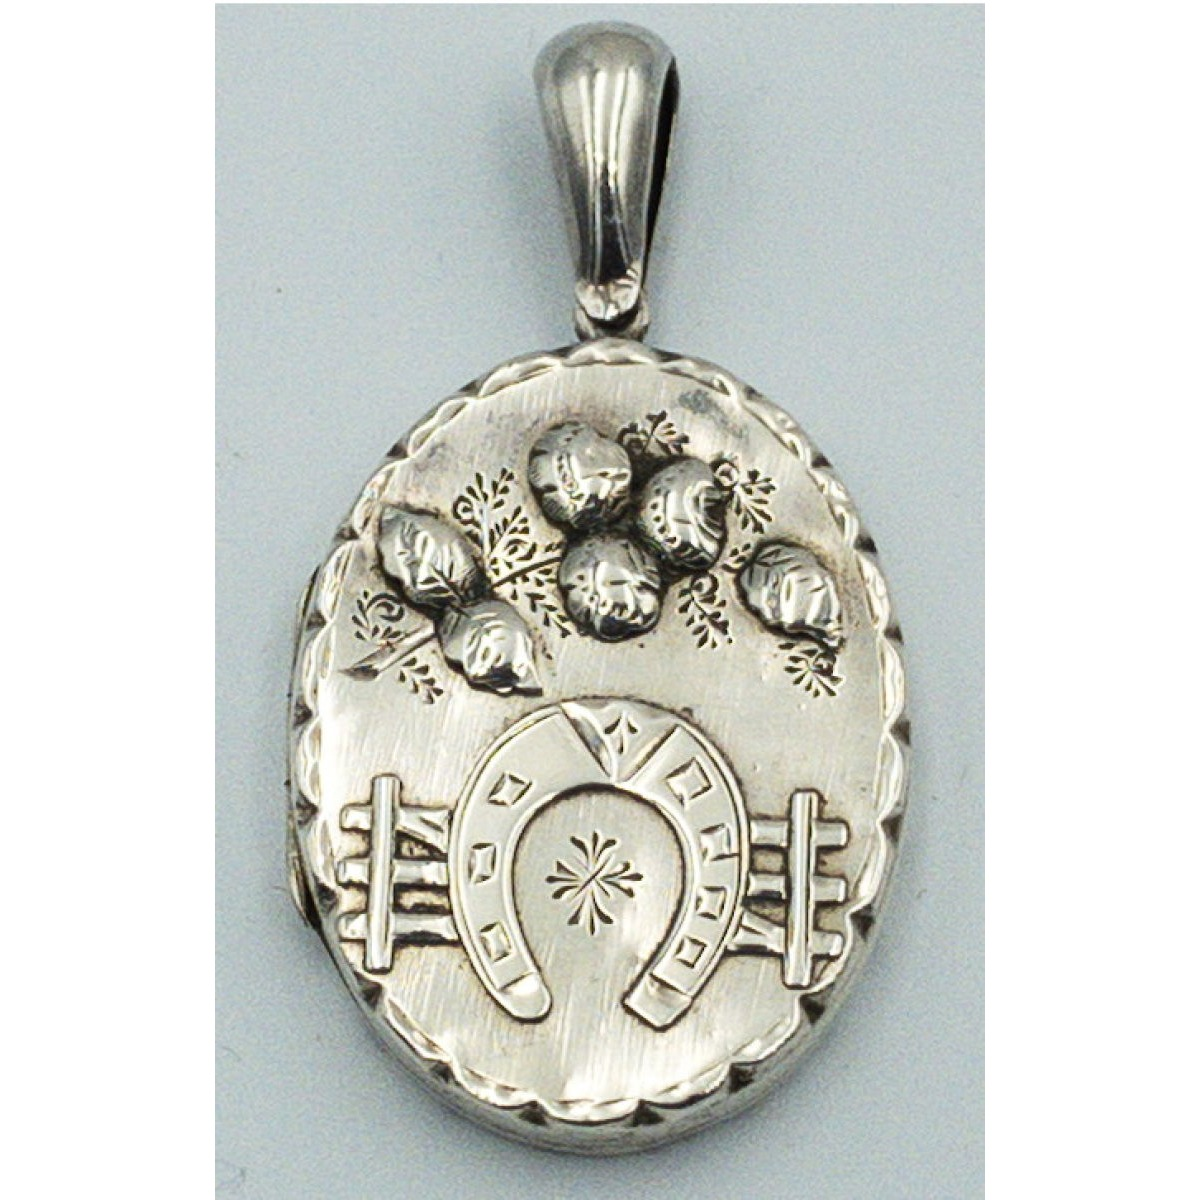 Spectacular Horseshoe and Applied flowers Antique English Silver Locket